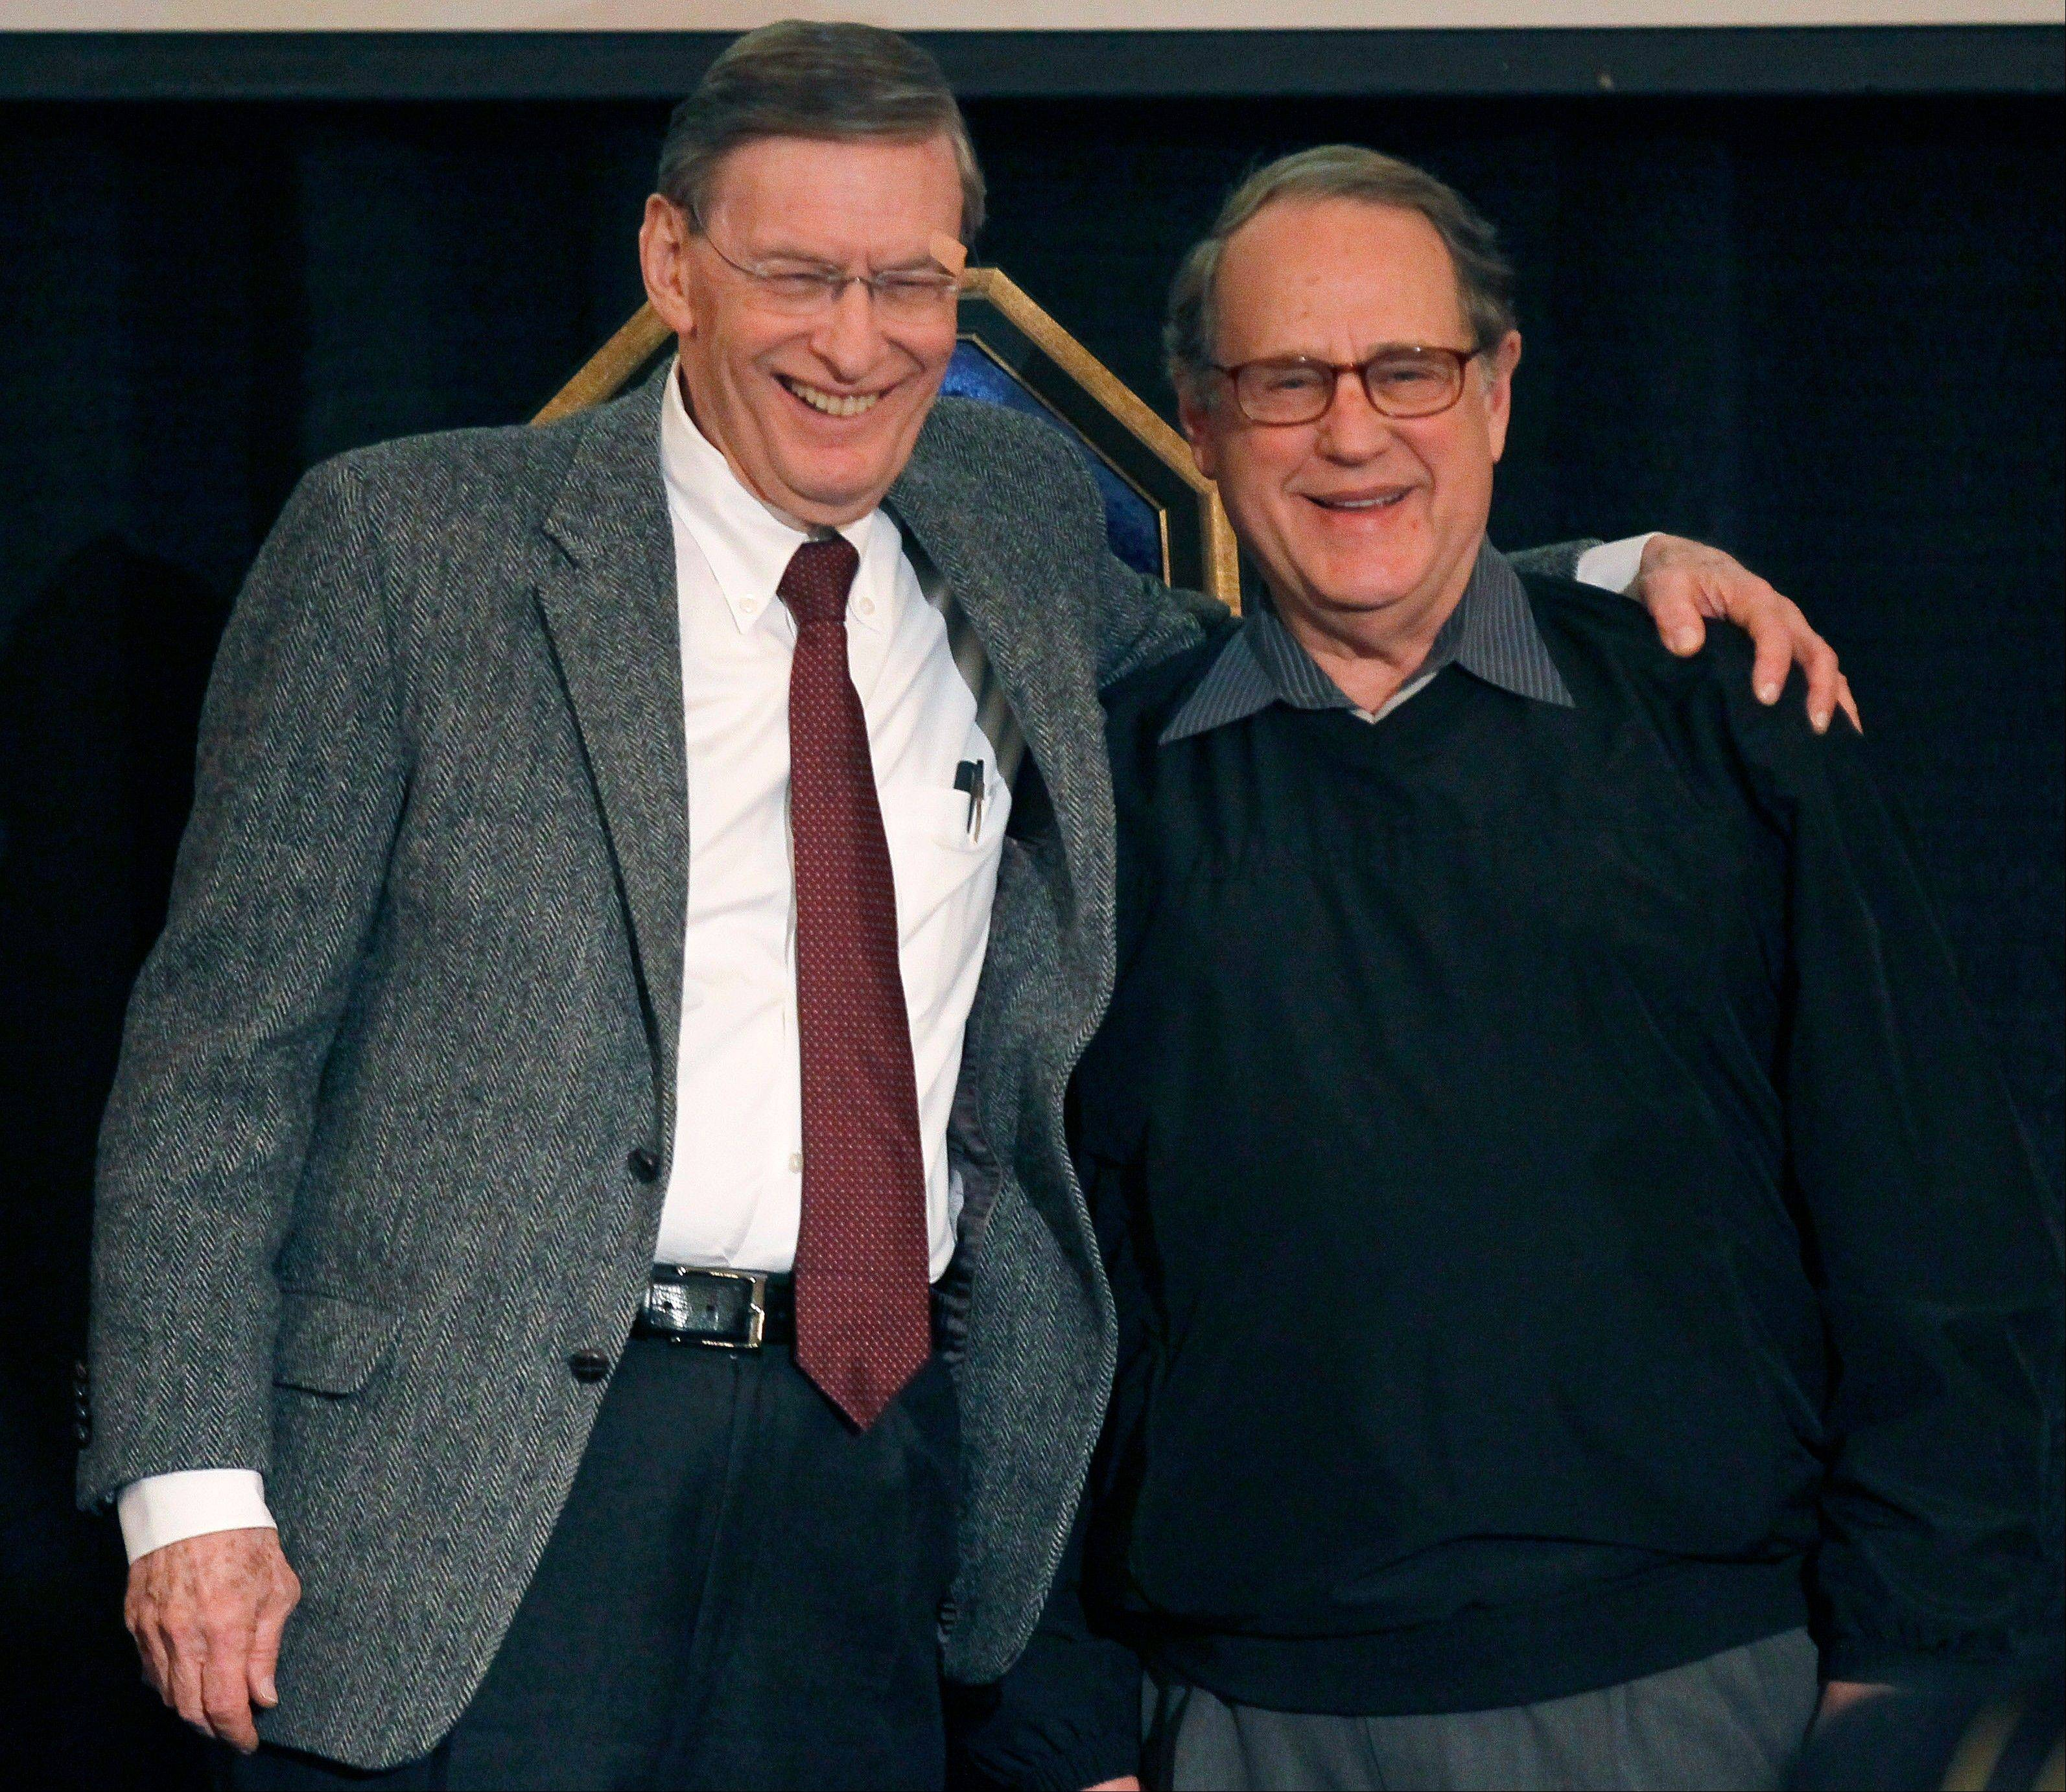 Baseball Commissioner Bud Selig, left, embraces Chicago White Sox chairman Jerry Reinsdorf during the White Sox baseball fan festival.